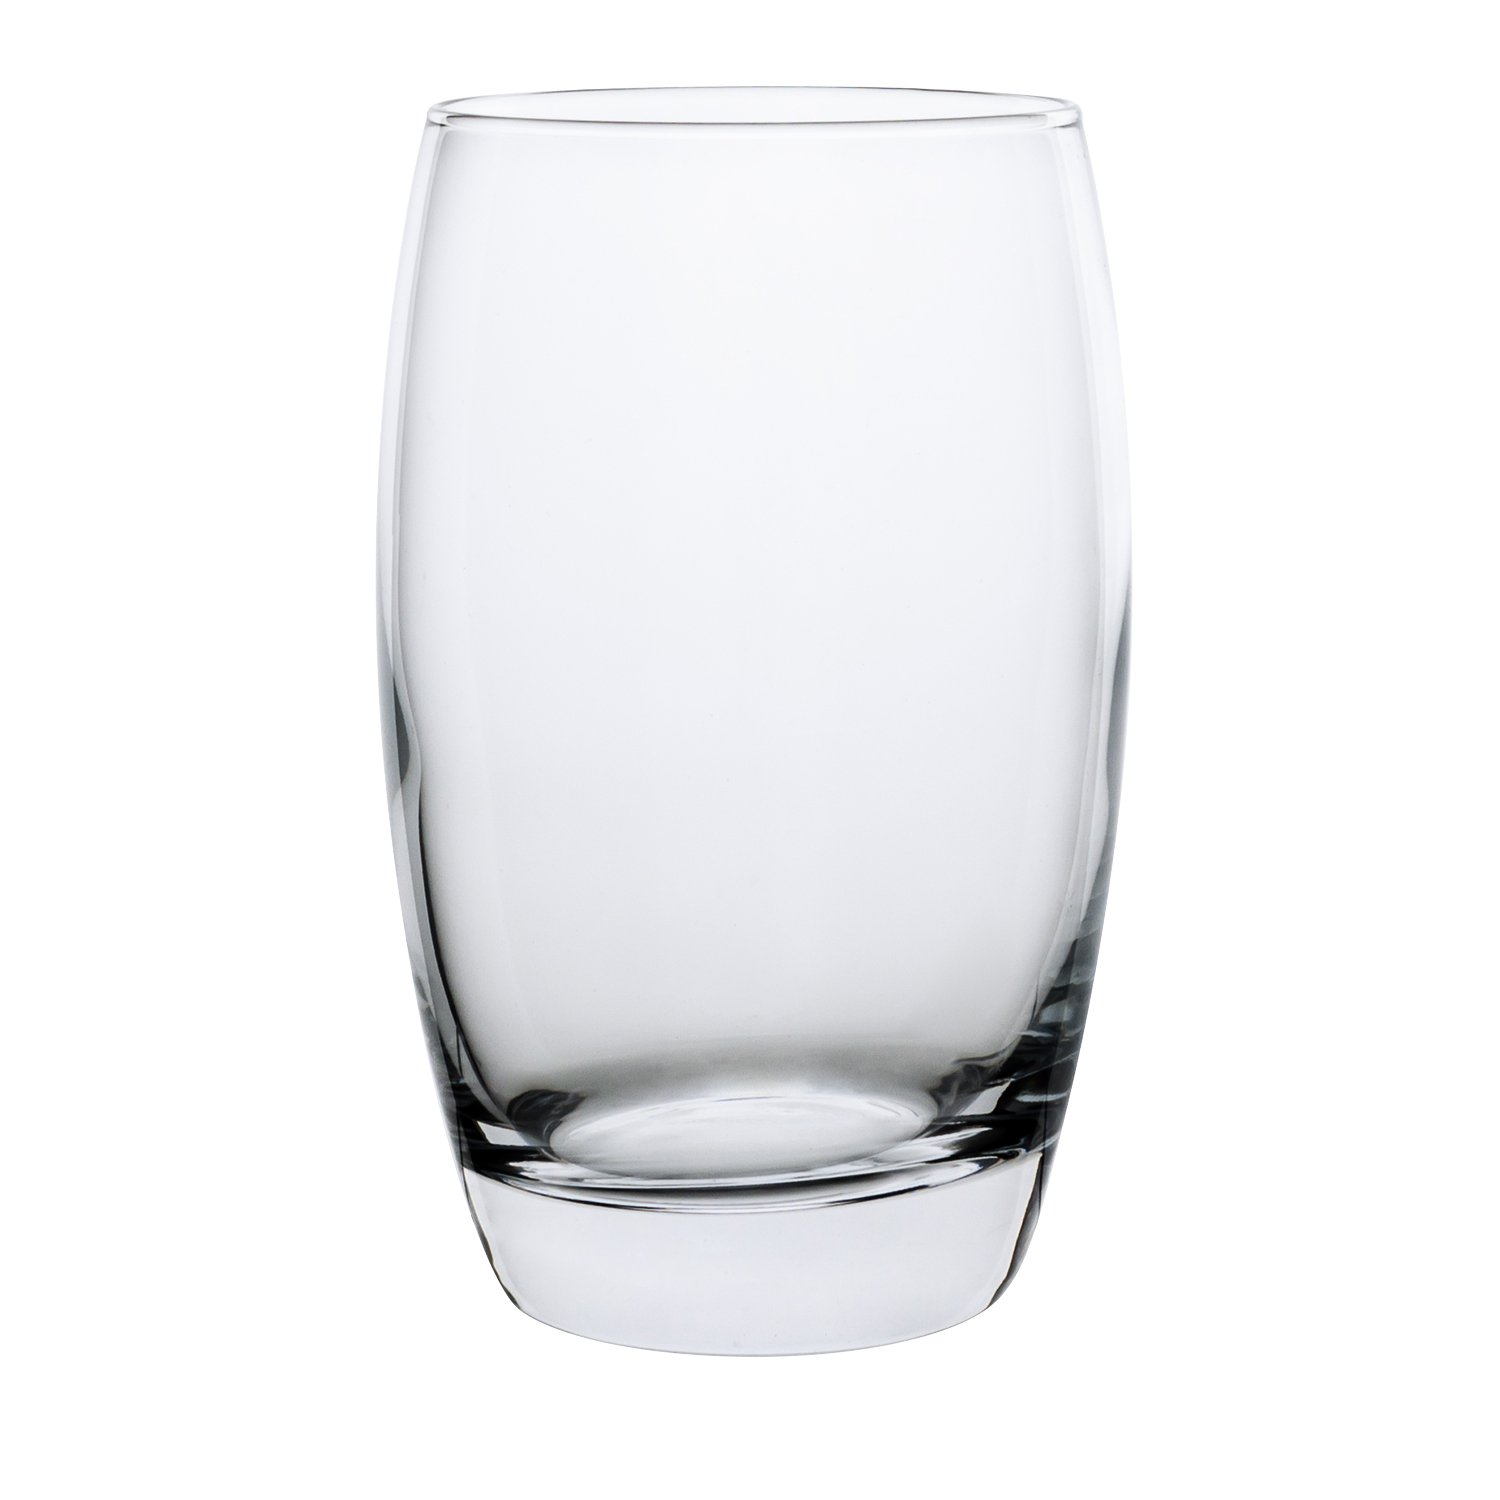 Luminarc J8400 Set de Vasos, 35 cl: Amazon.es: Hogar